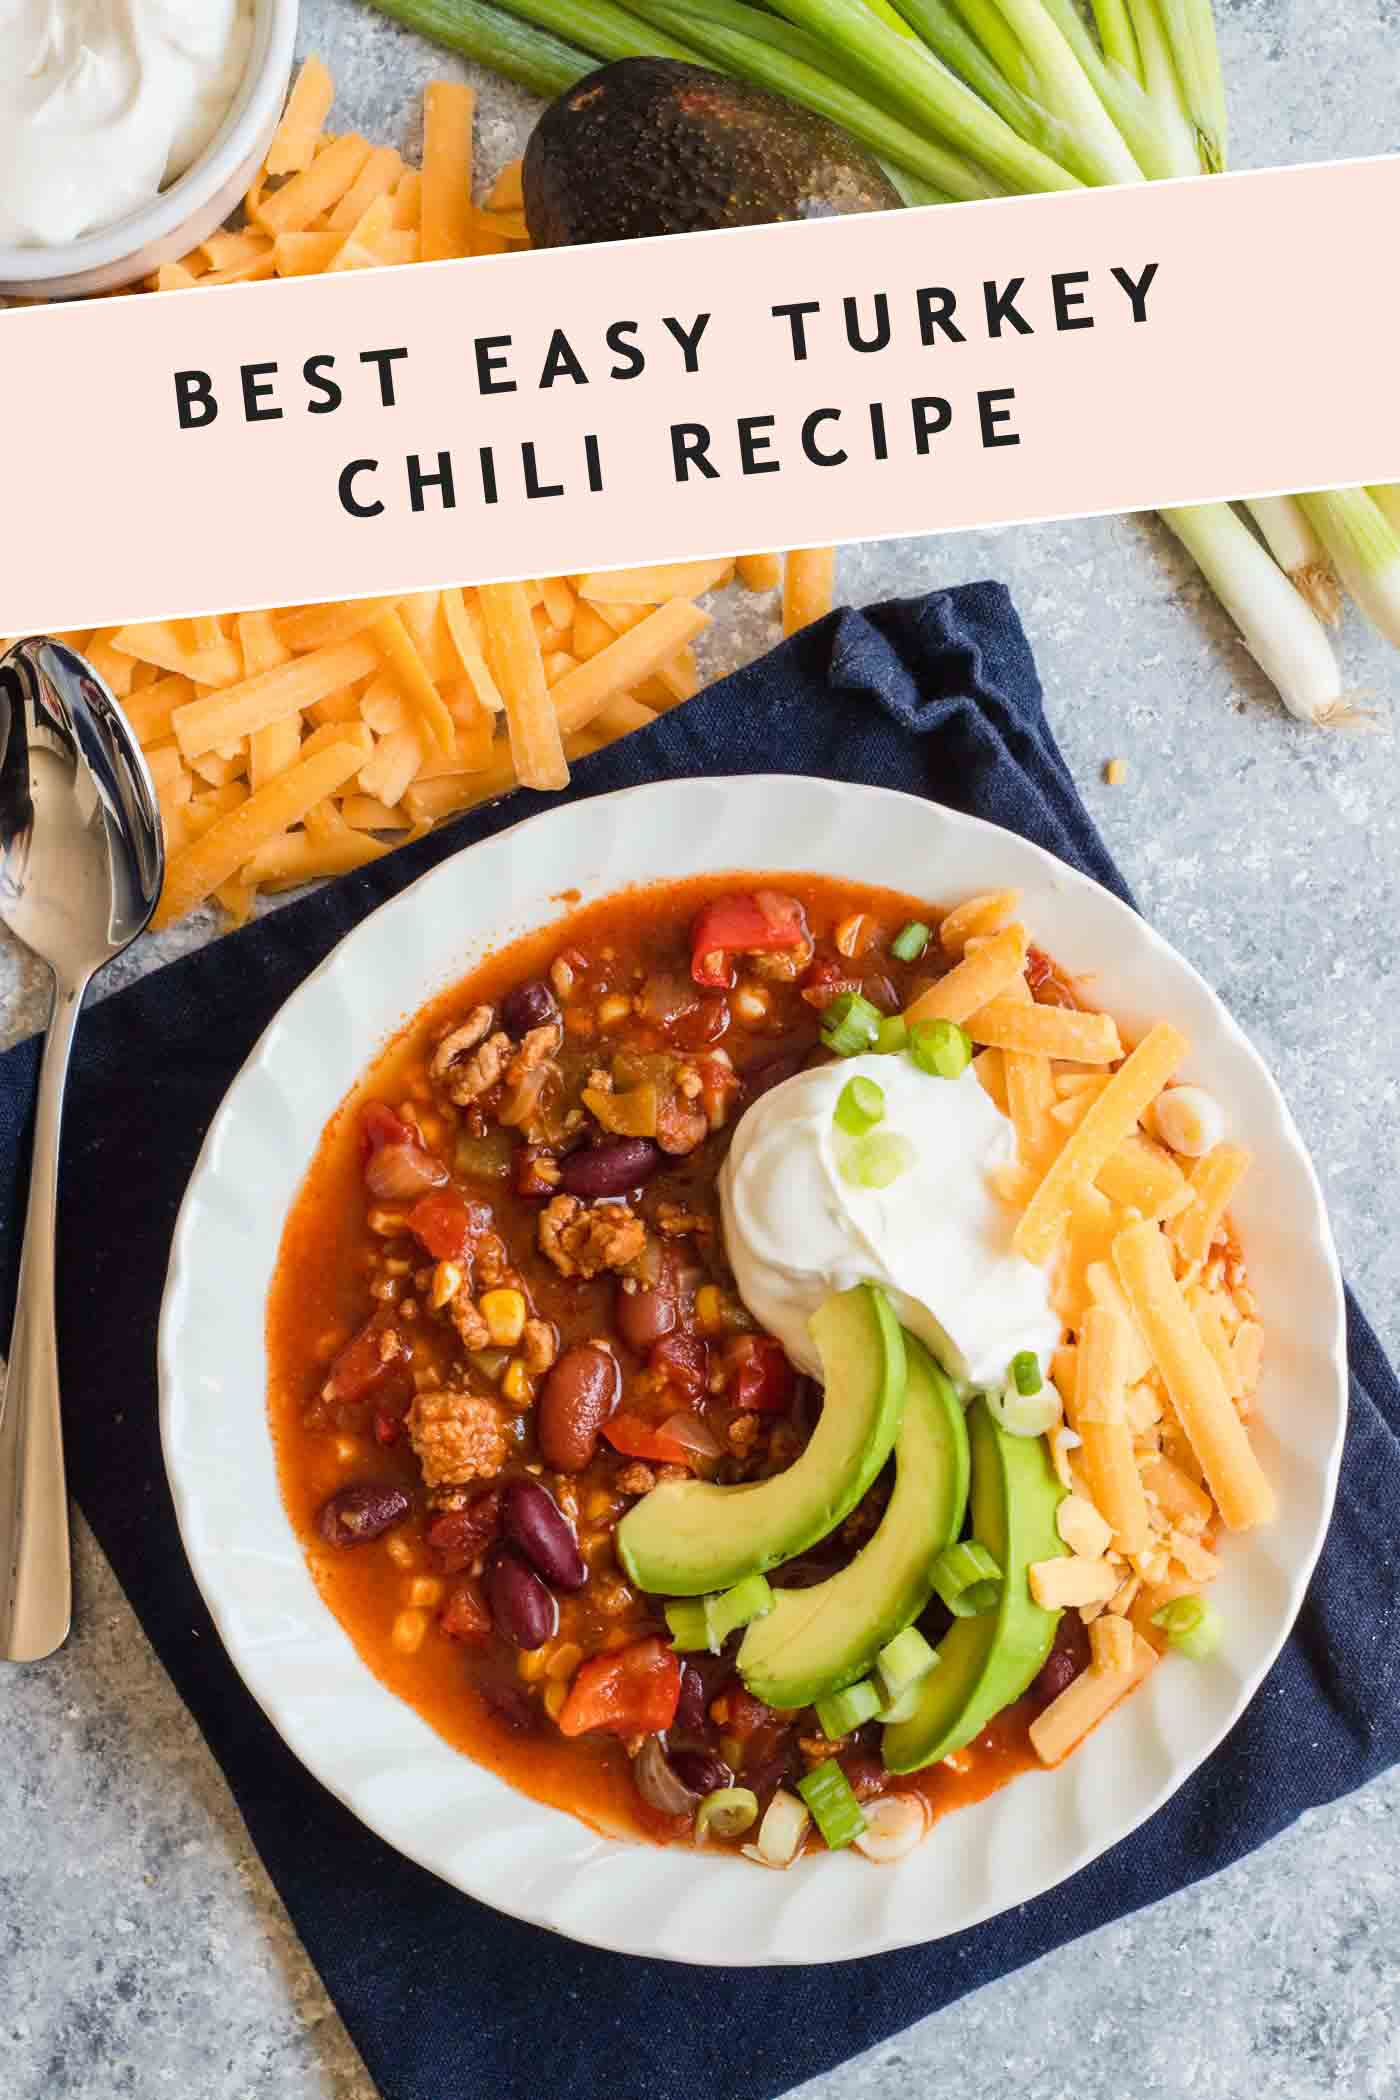 Photo of the Best Easy Turkey Chili Recipe & garnish ideas by top Houston lifestyle blogger Ashley Rose of Sugar & Cloth